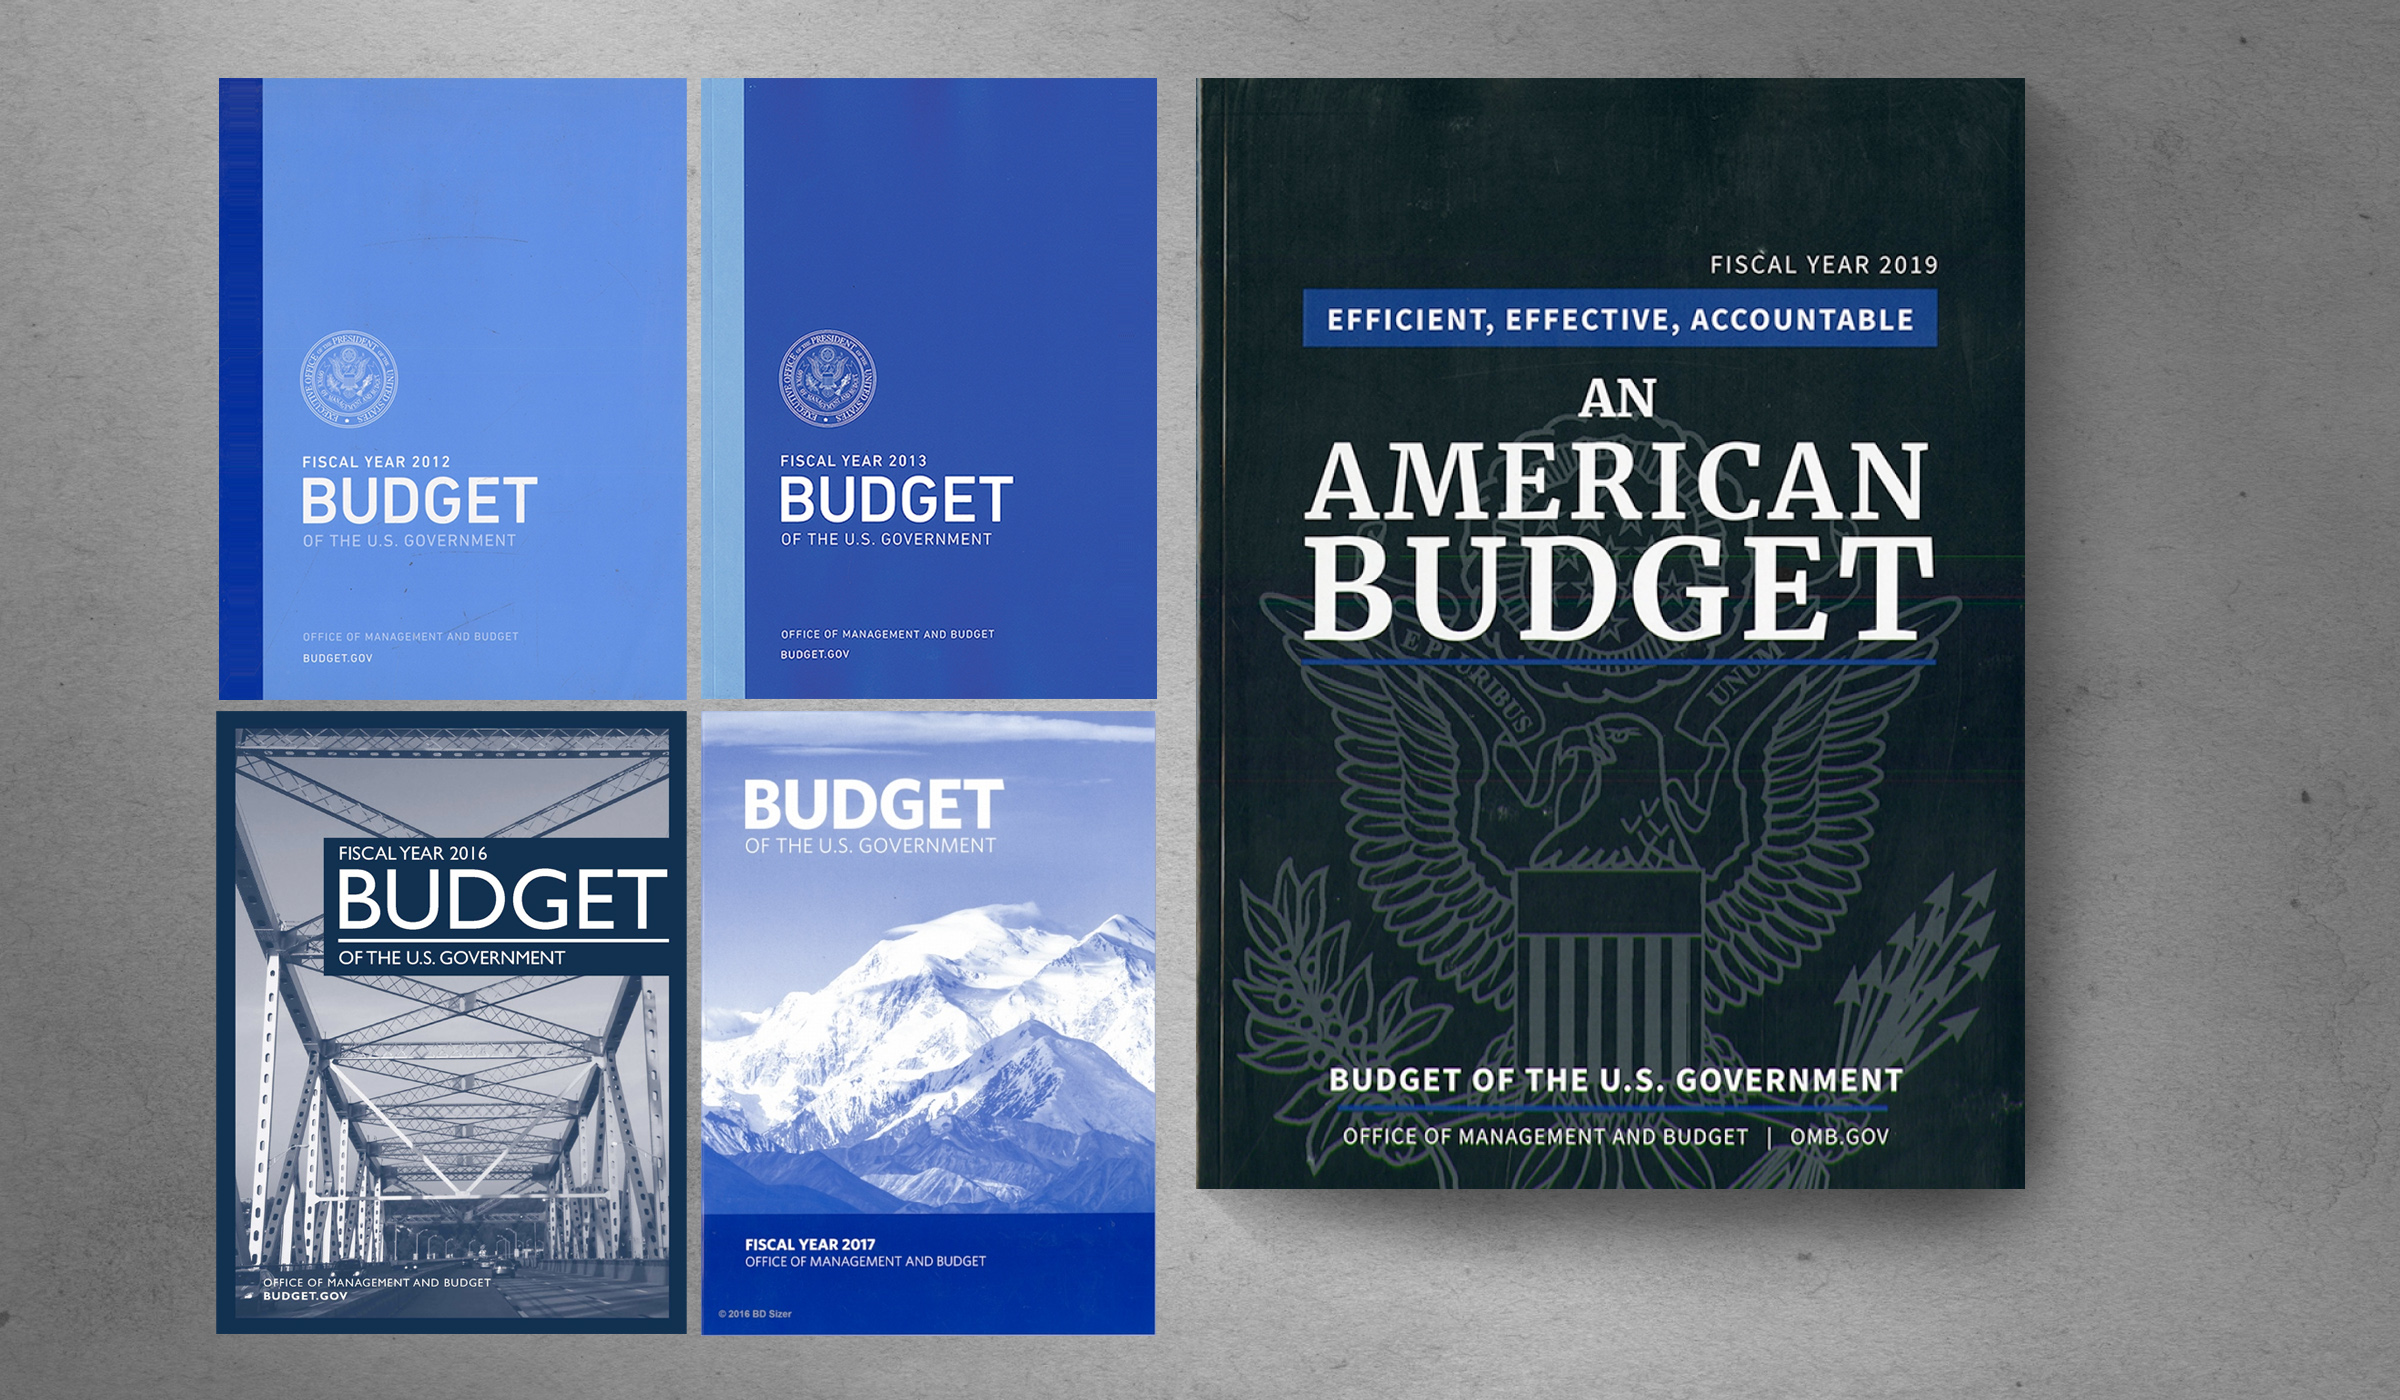 Judging A Book By Its Cover The 2019 US Budget